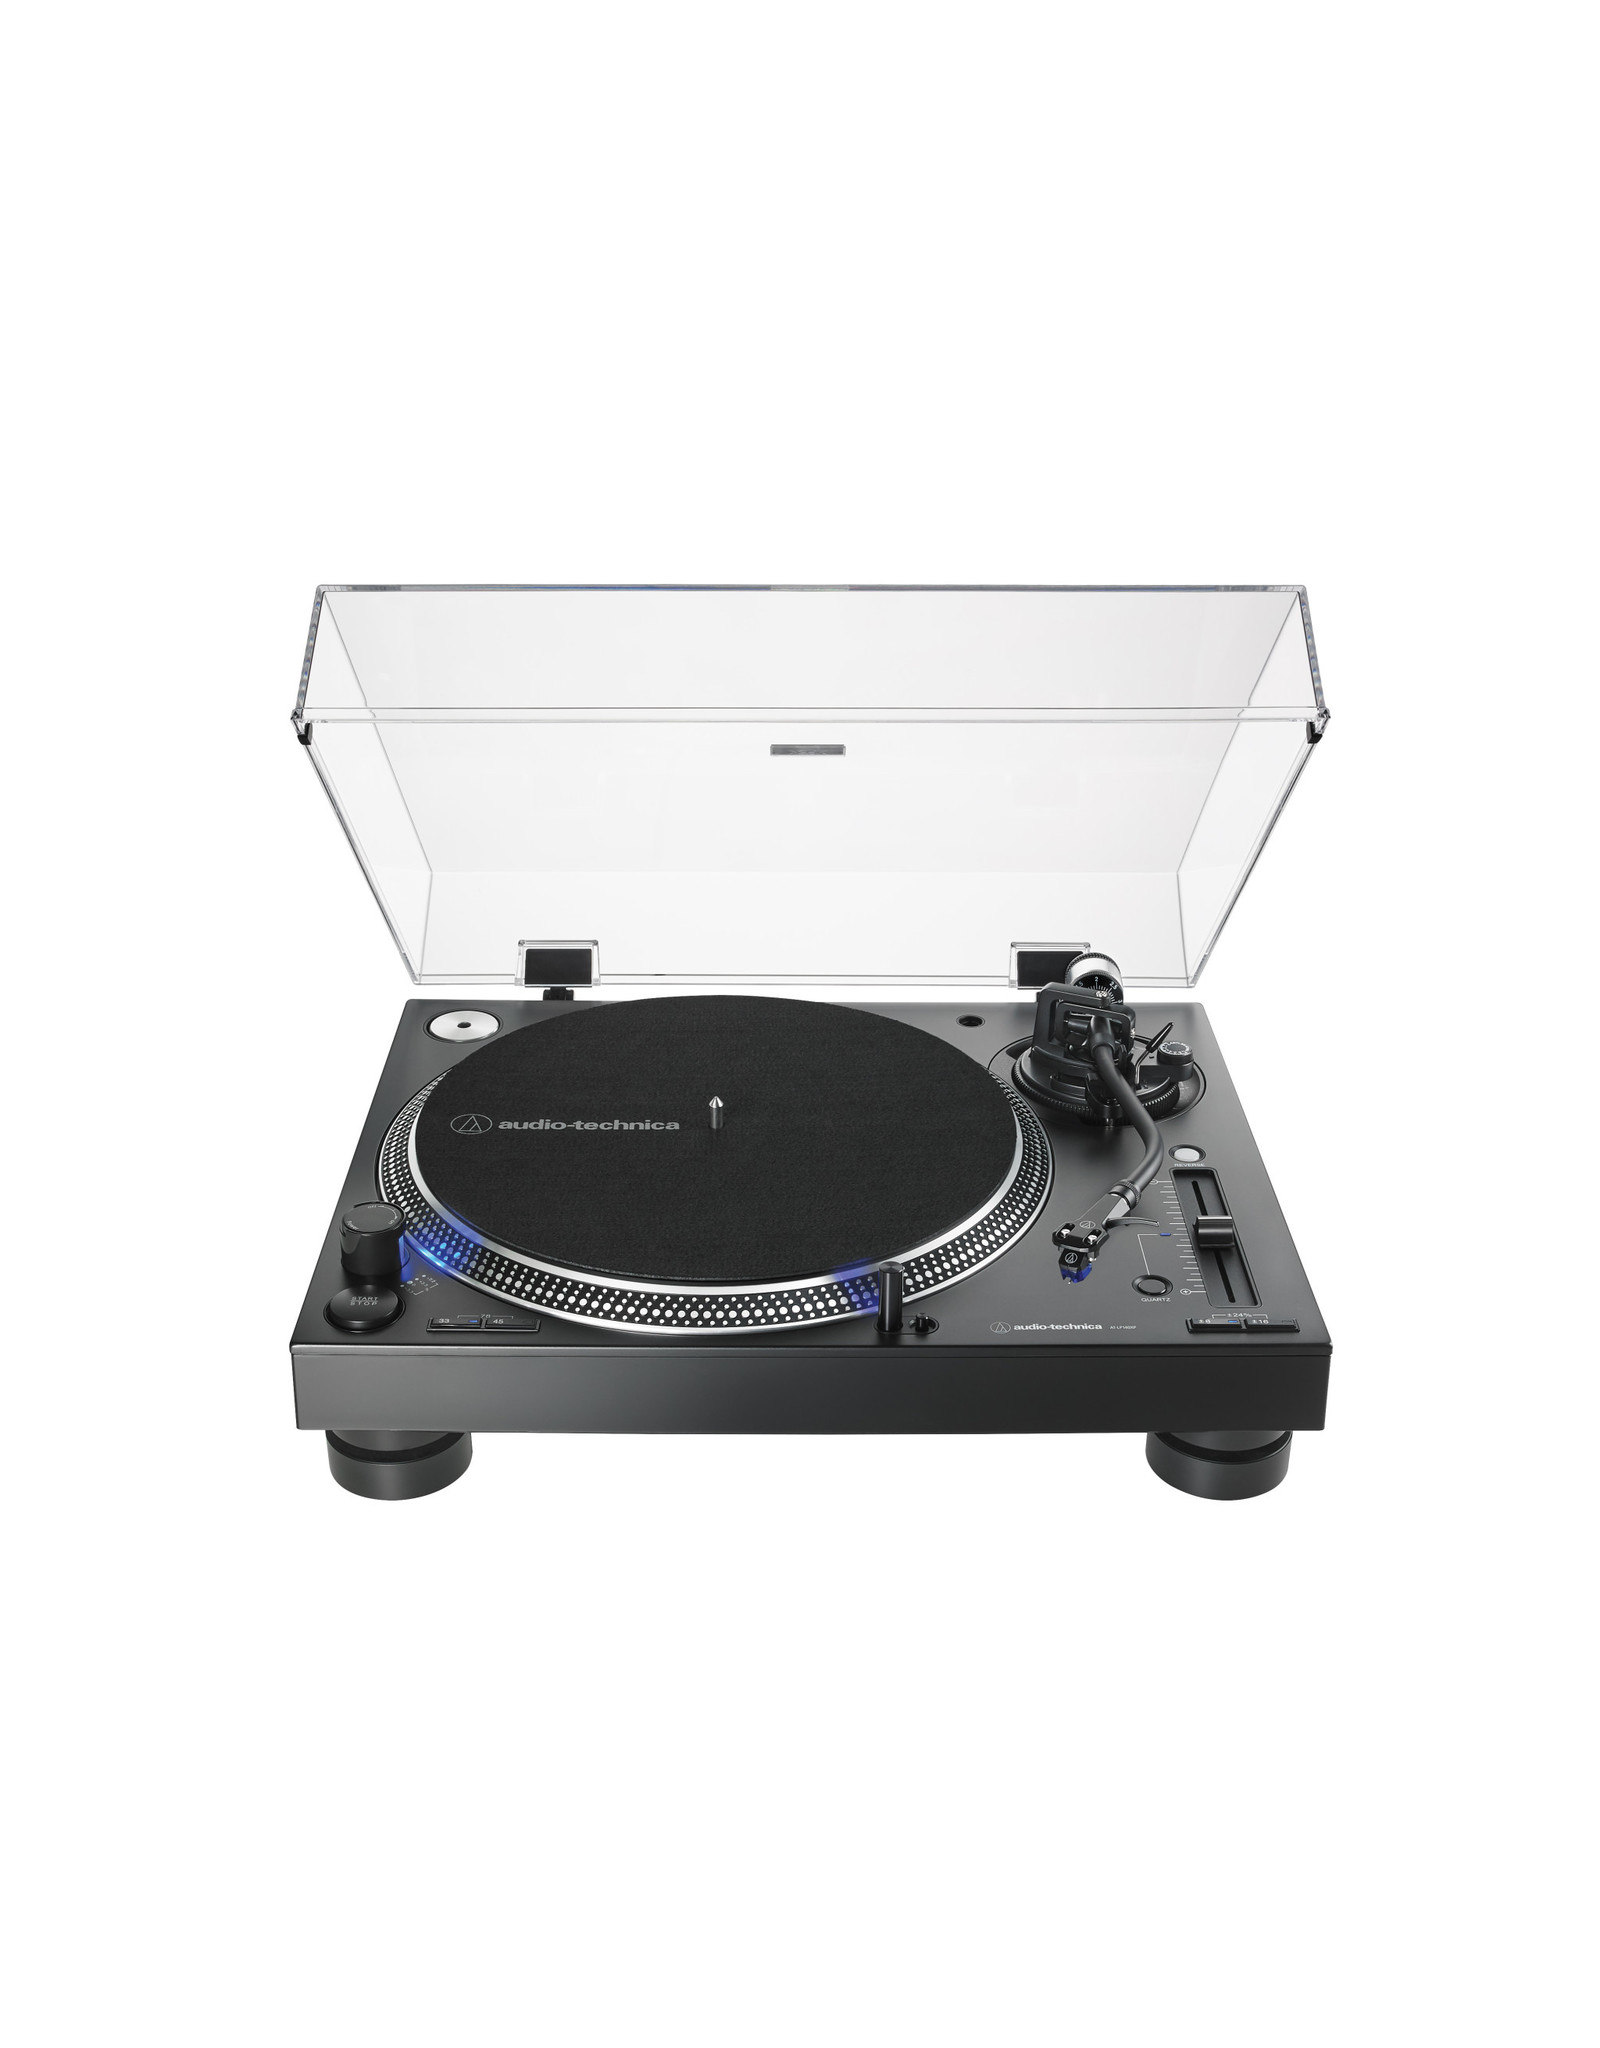 Audio-Technica Audio-Technica AT-LP140XP Turntable